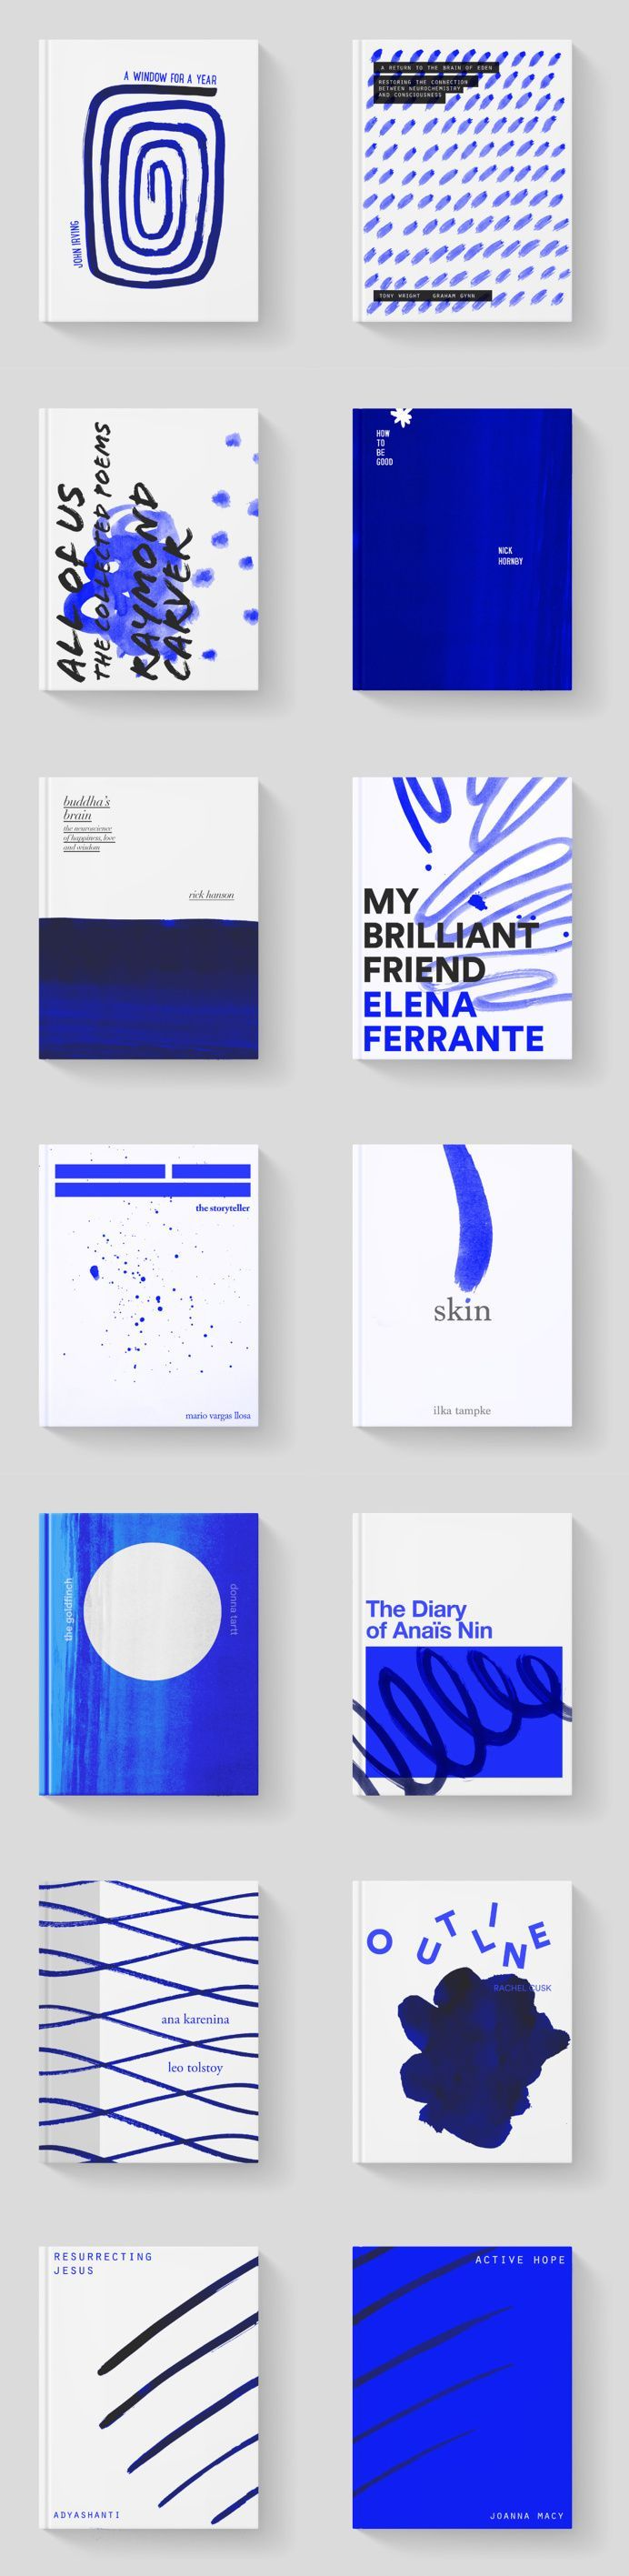 Everything — Designspiration